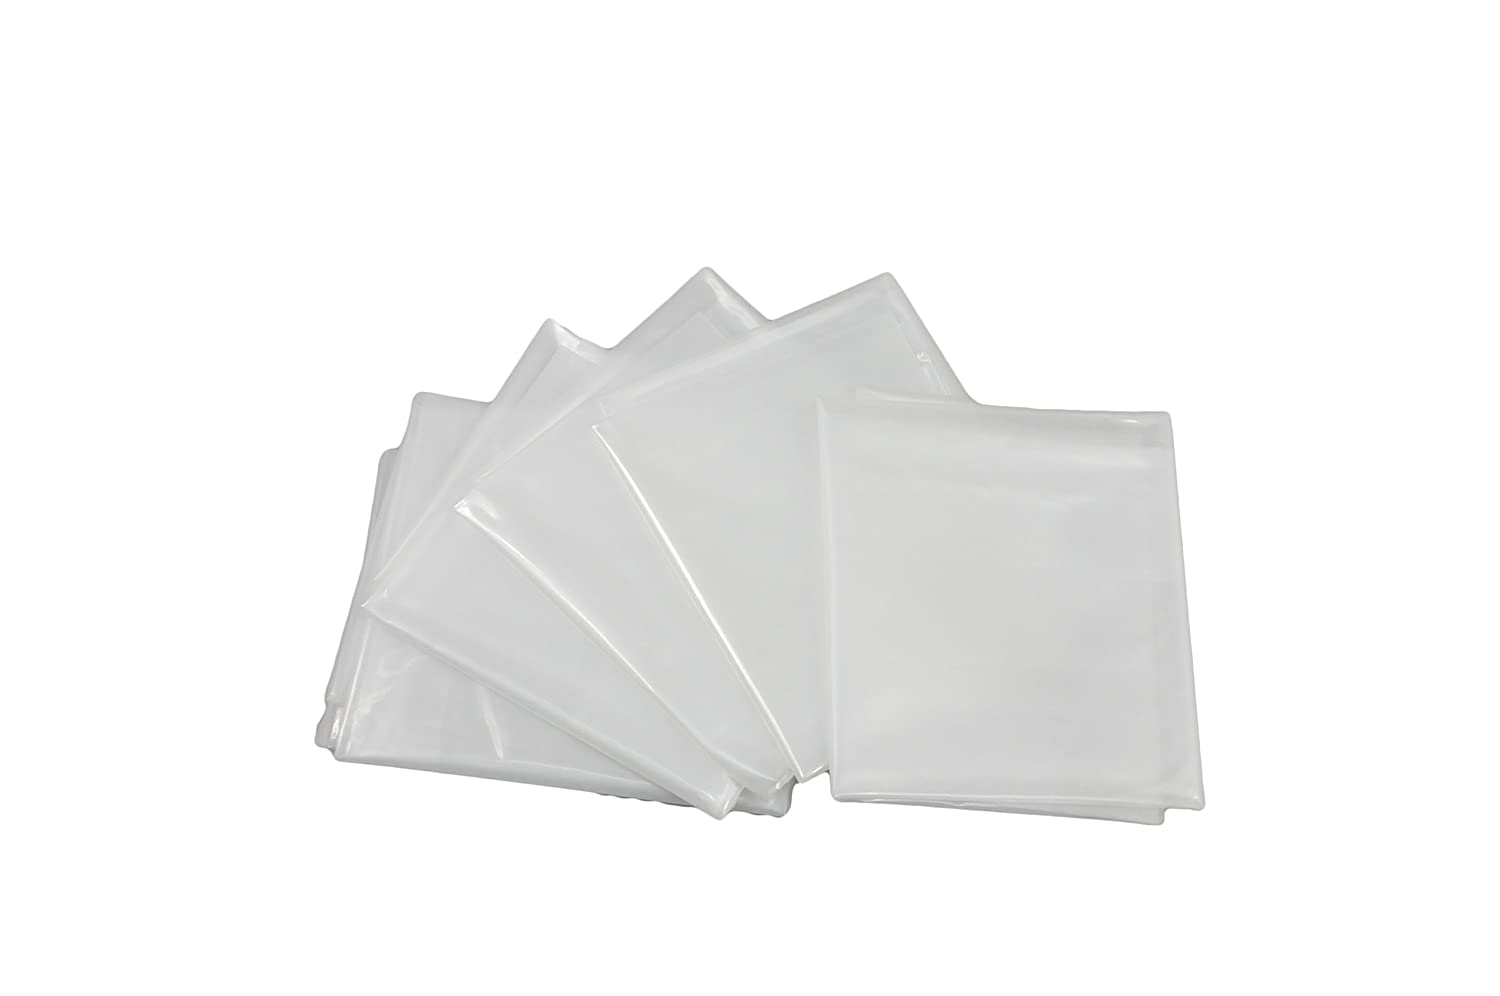 RIKON Power Tools 60-902 Plastic Dust Bag for Rikon 60-100 2 HP Dust Collector, 5-Pack